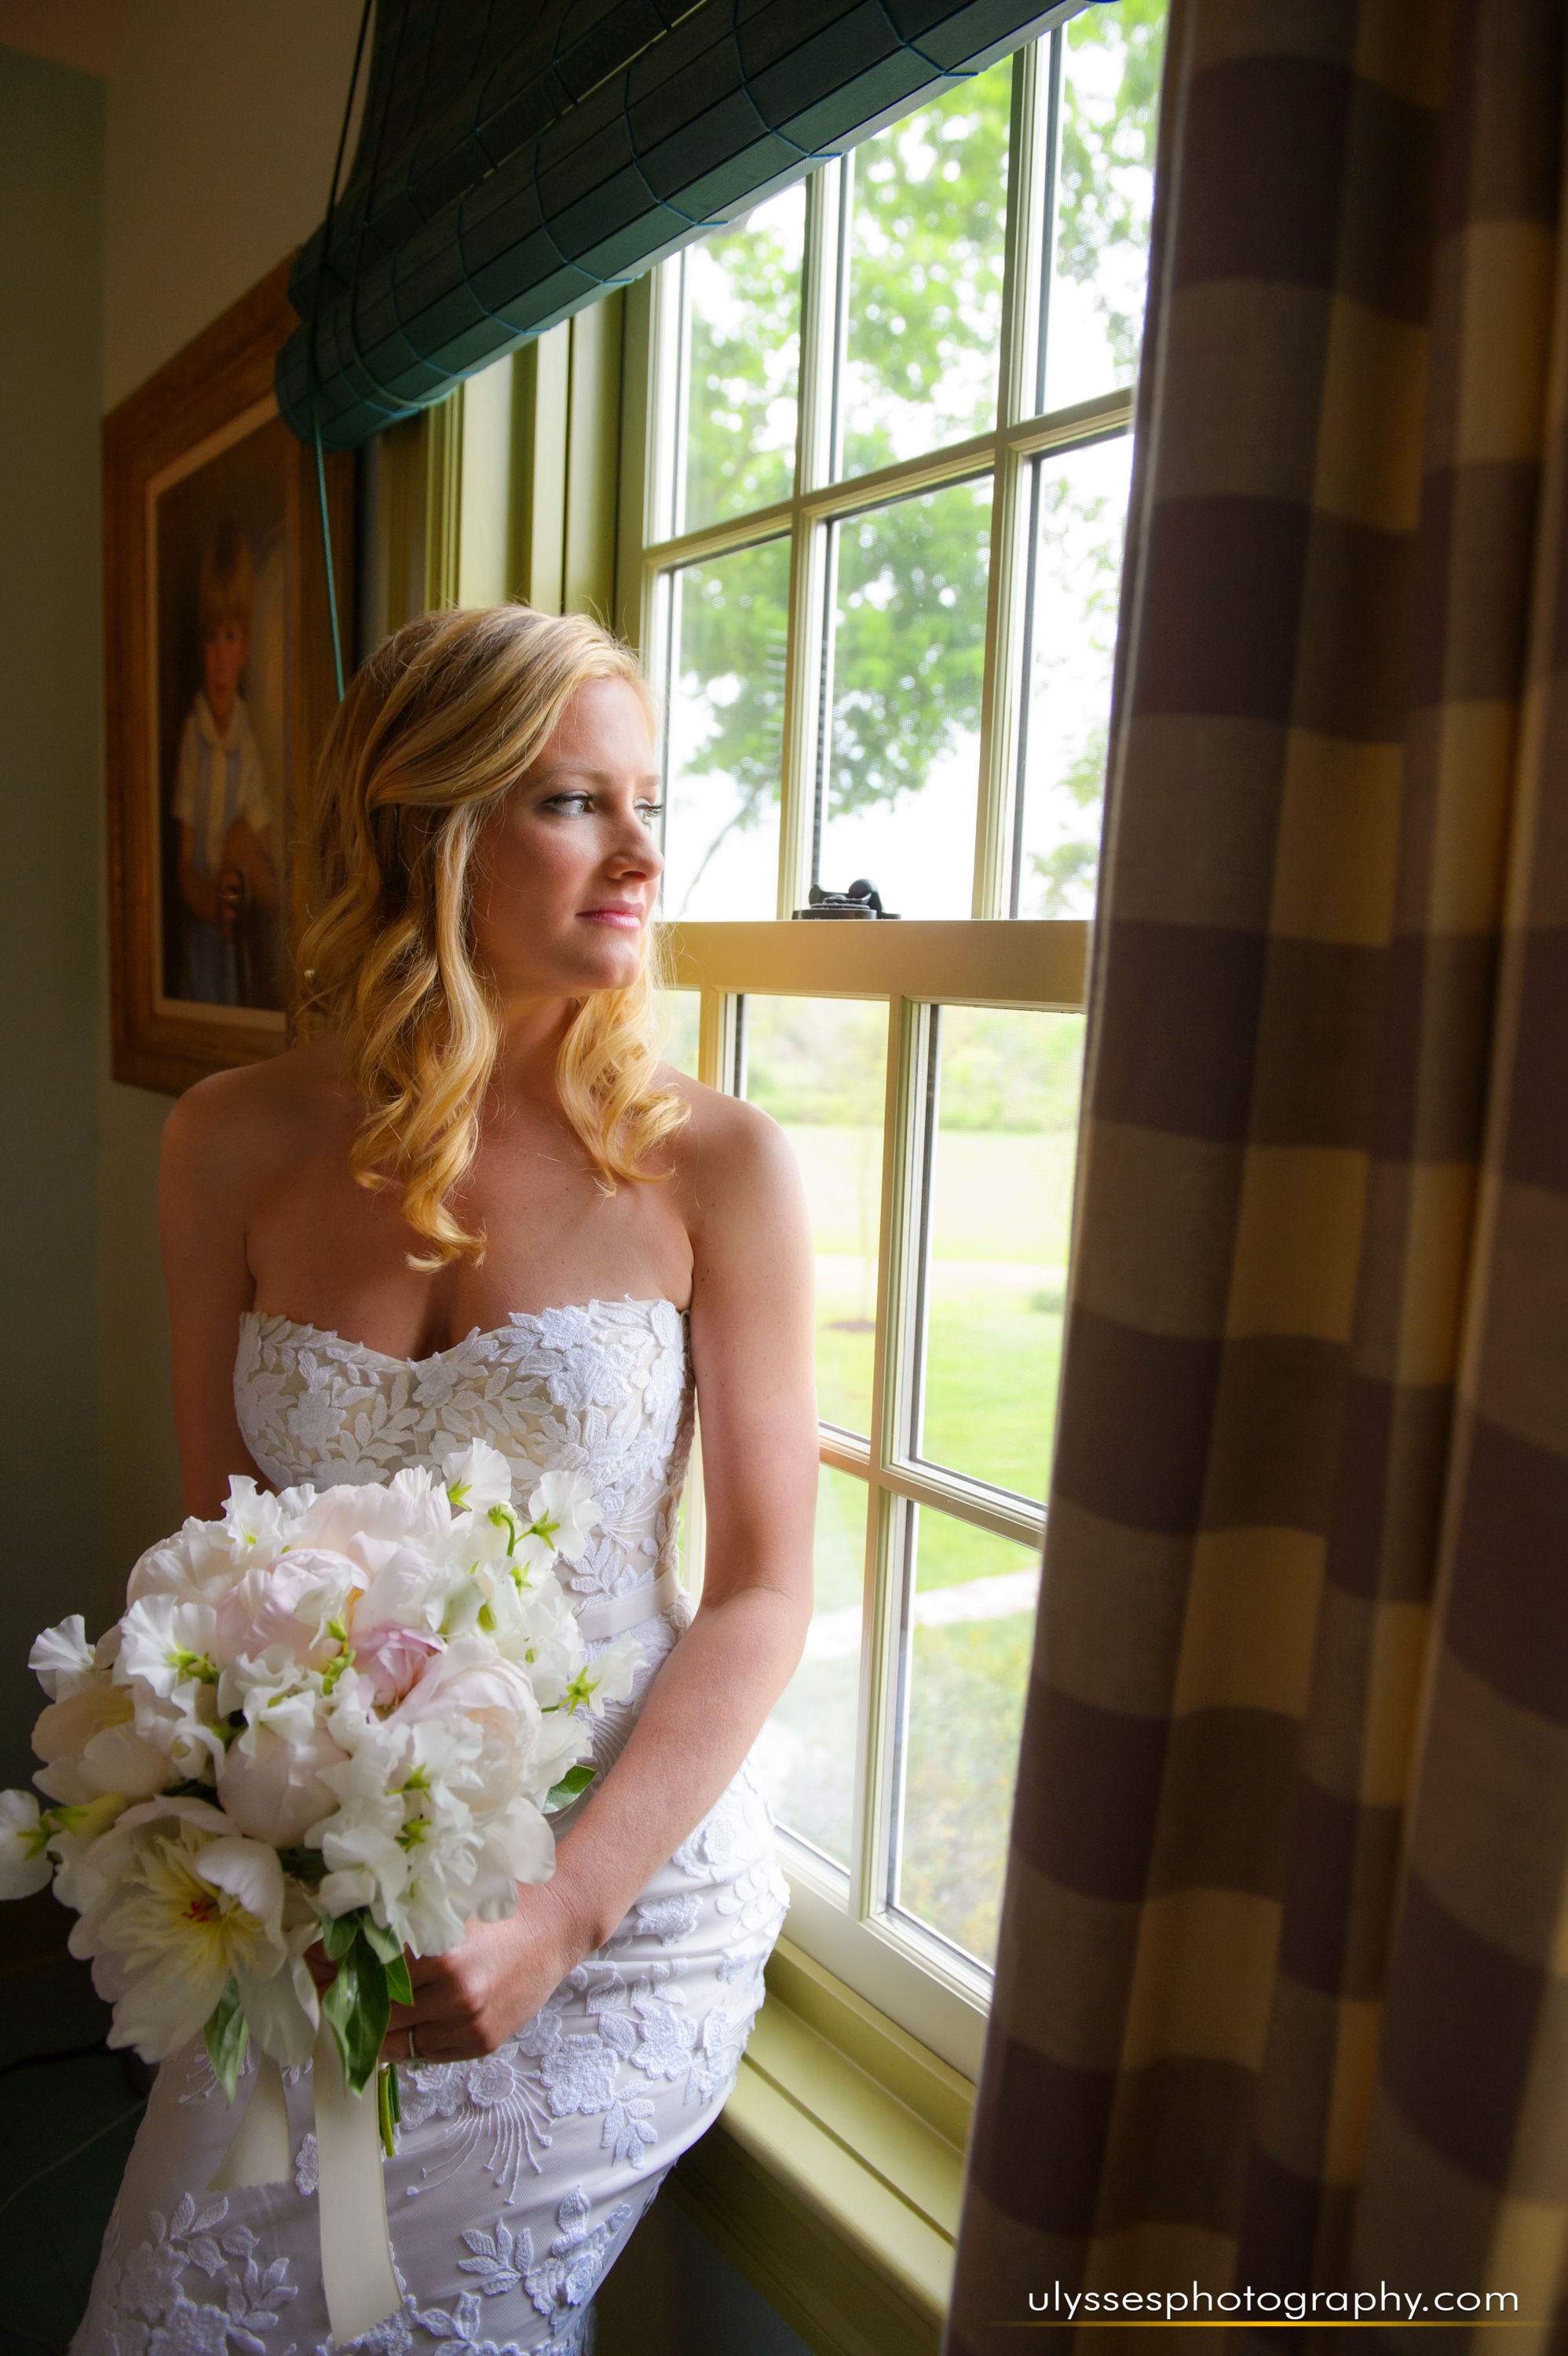 05 At Home Wedding Farm Wedding Mira Zwillinger Bridal Bride and Bouquet.jpg